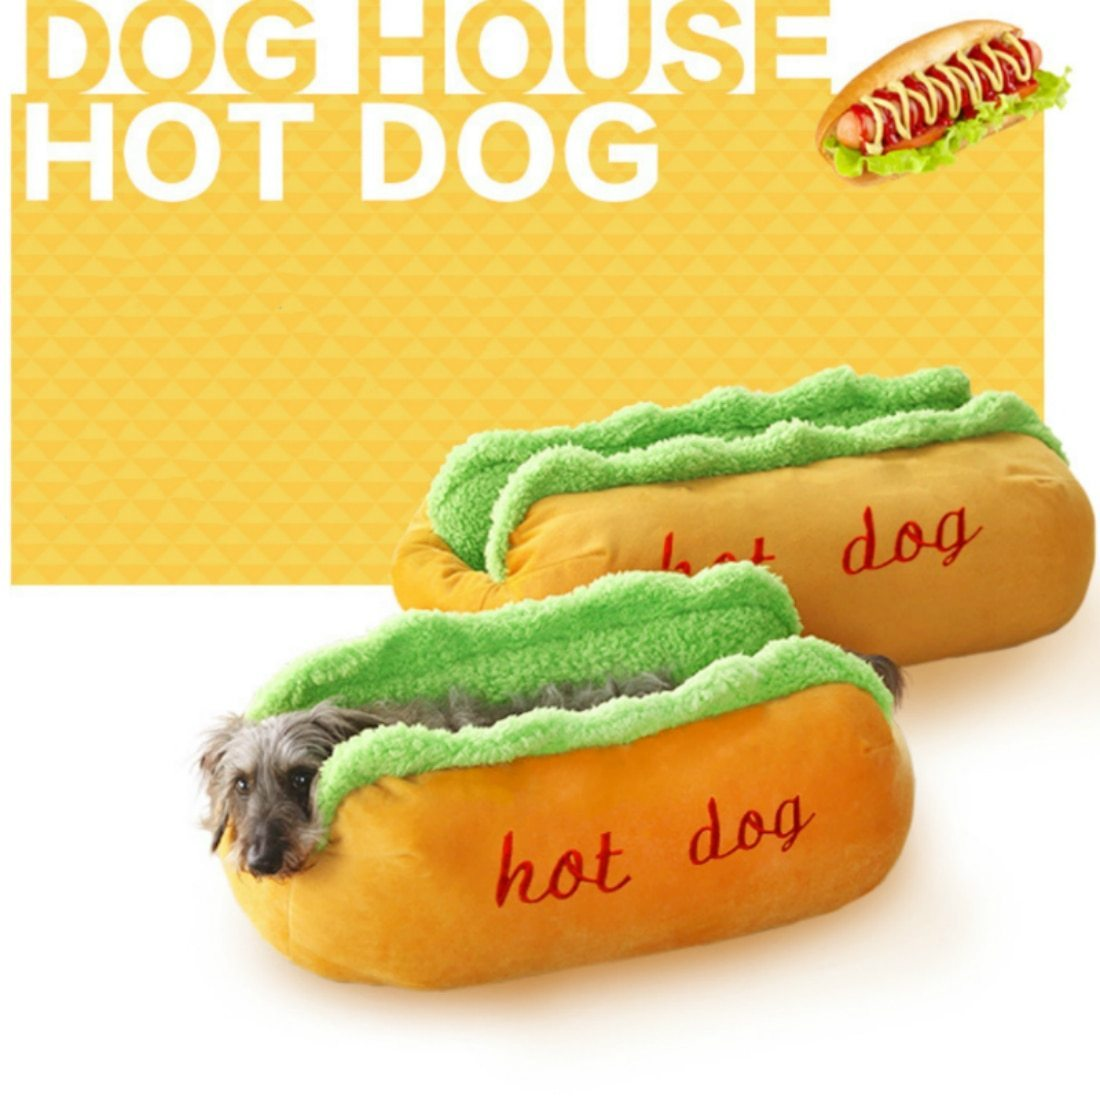 Limited Edition Hot Dog Sofa Bed